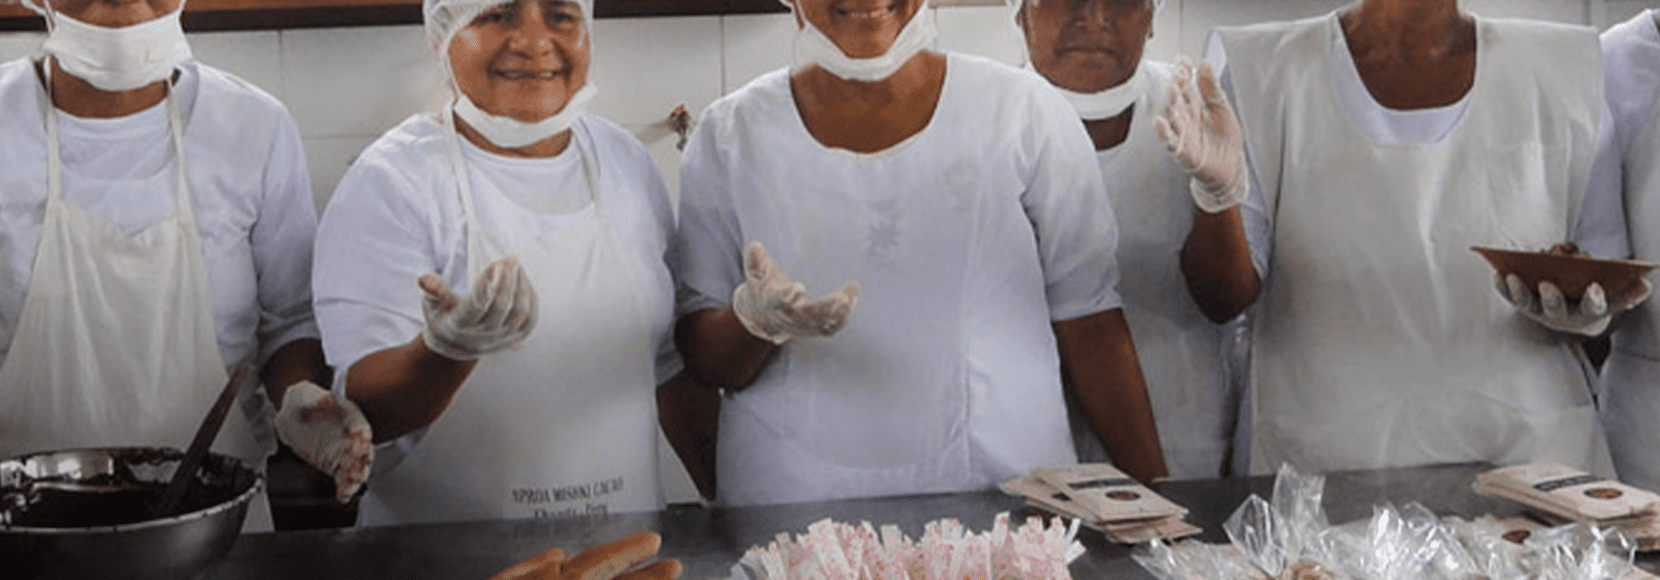 Group of women smiling after cooking